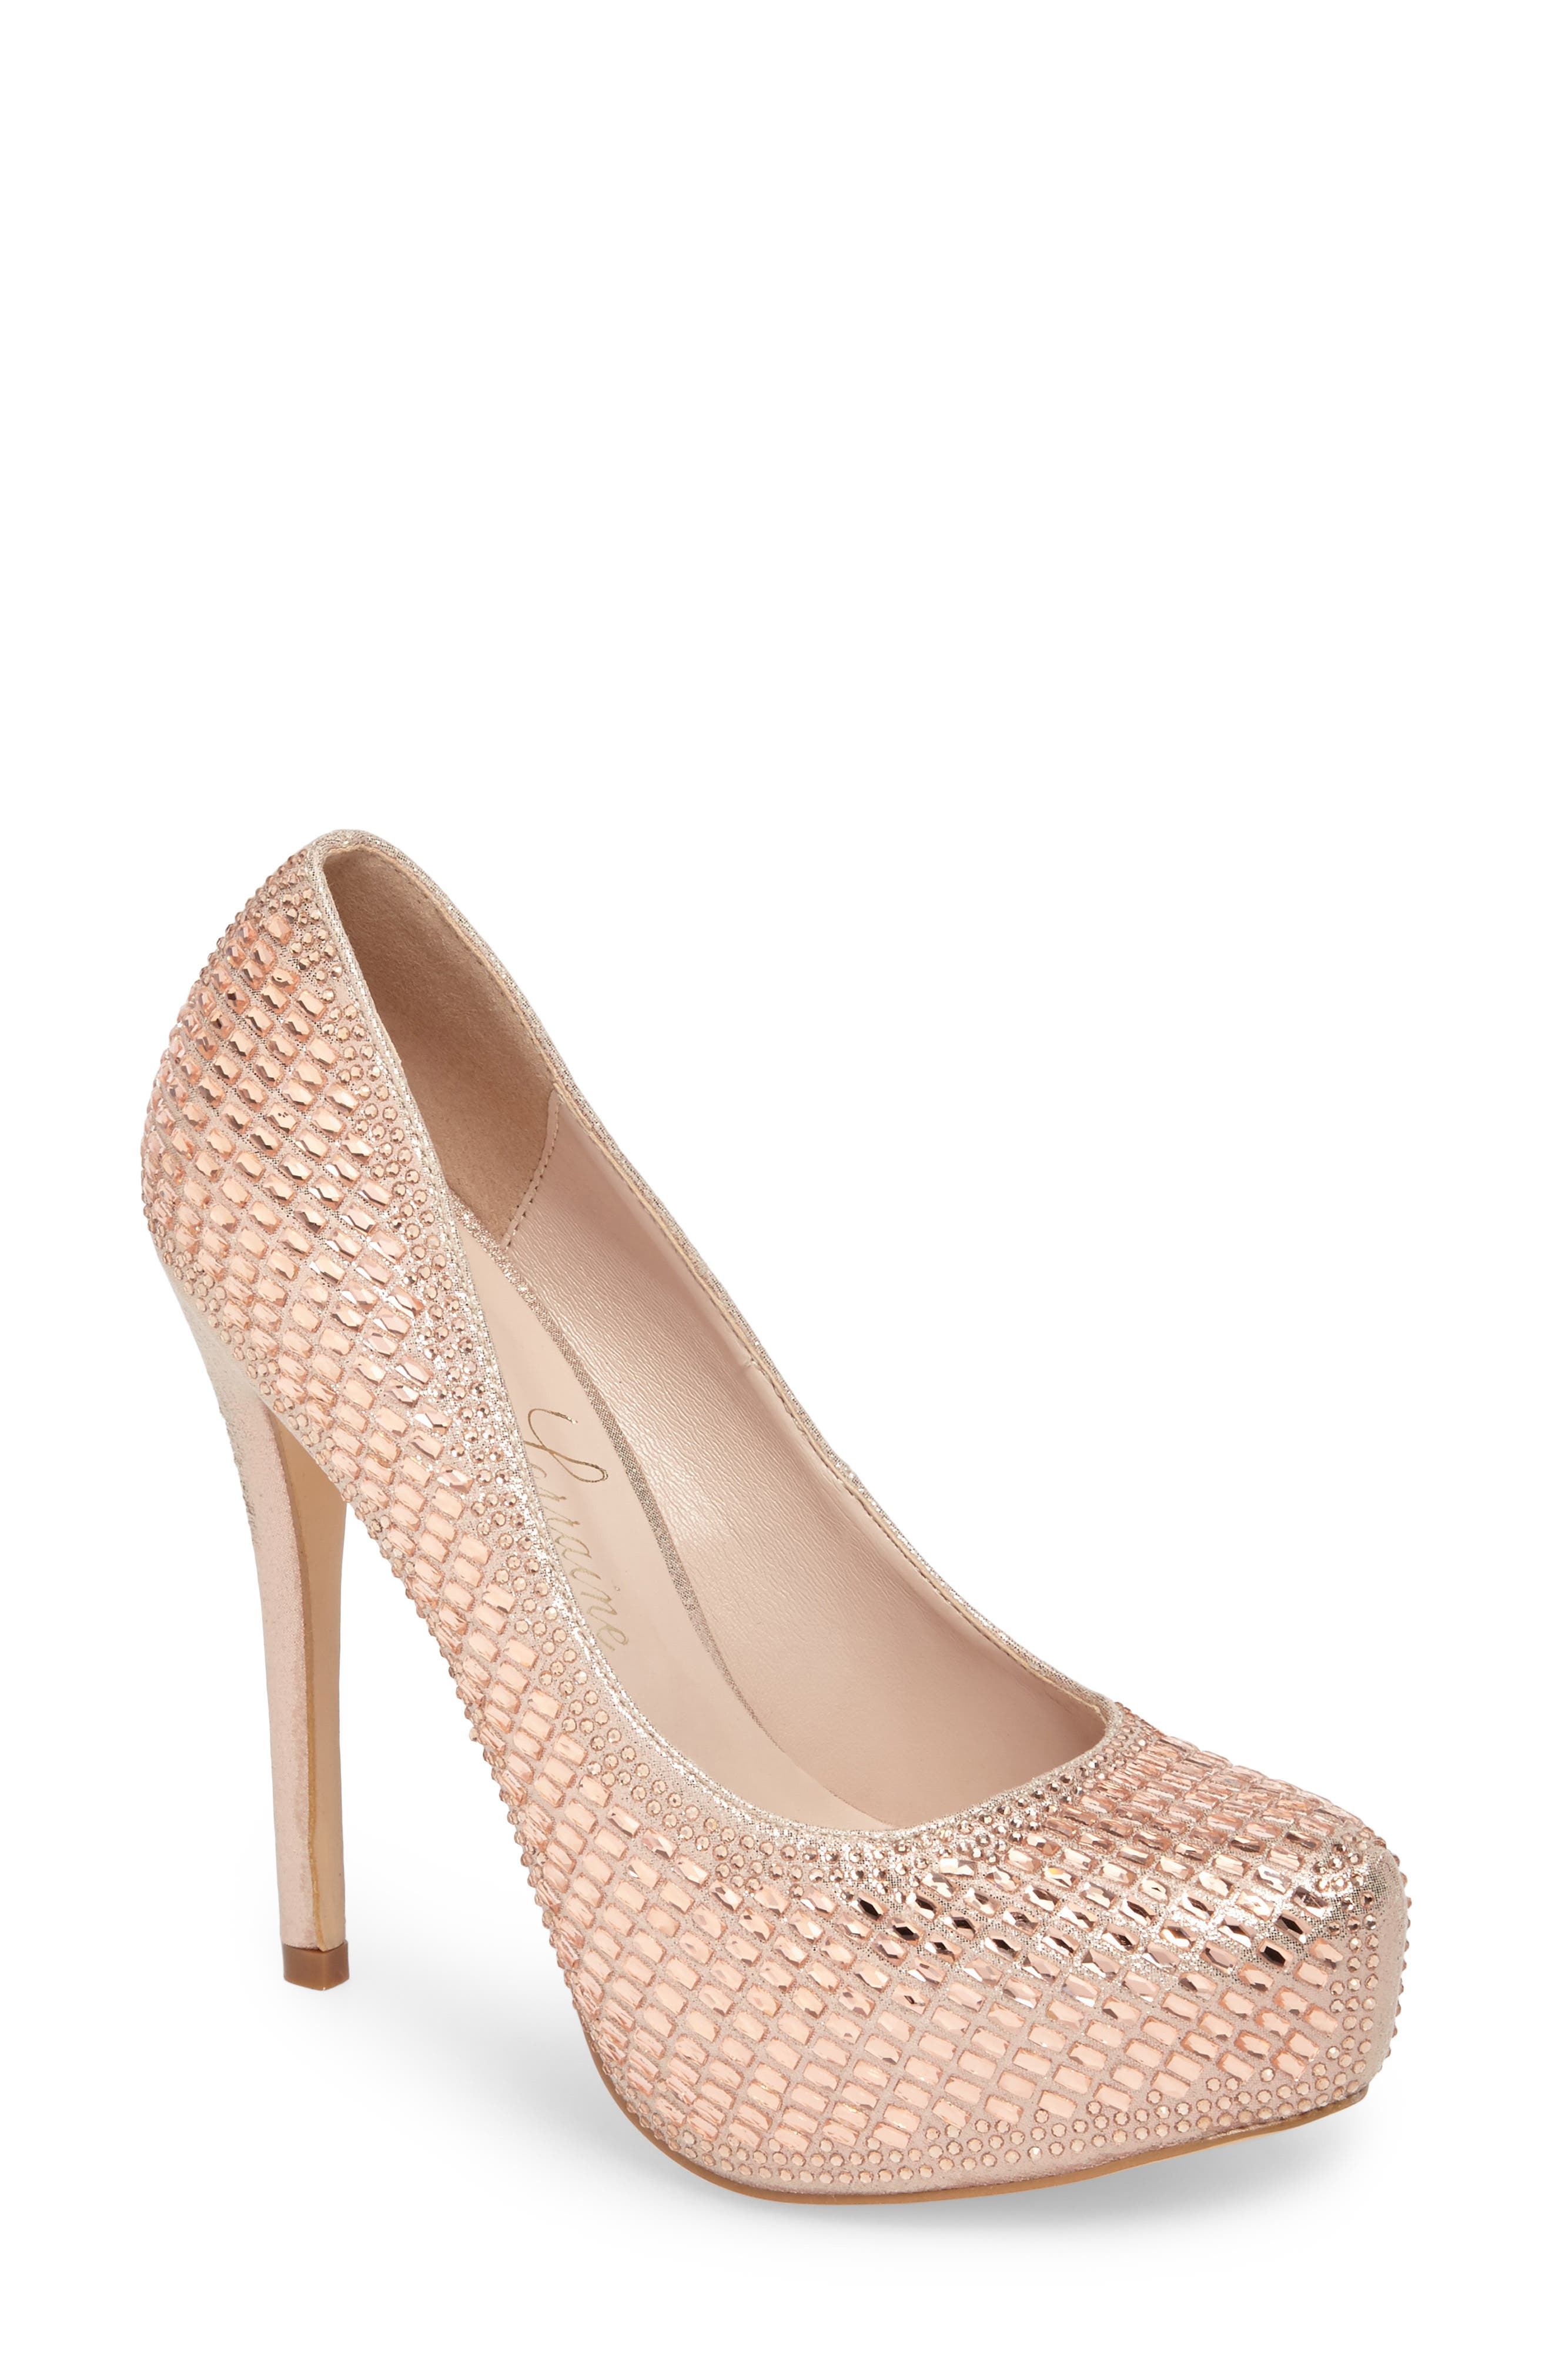 Vanna 5 Platform Pump,                         Main,                         color, ROSE GOLD